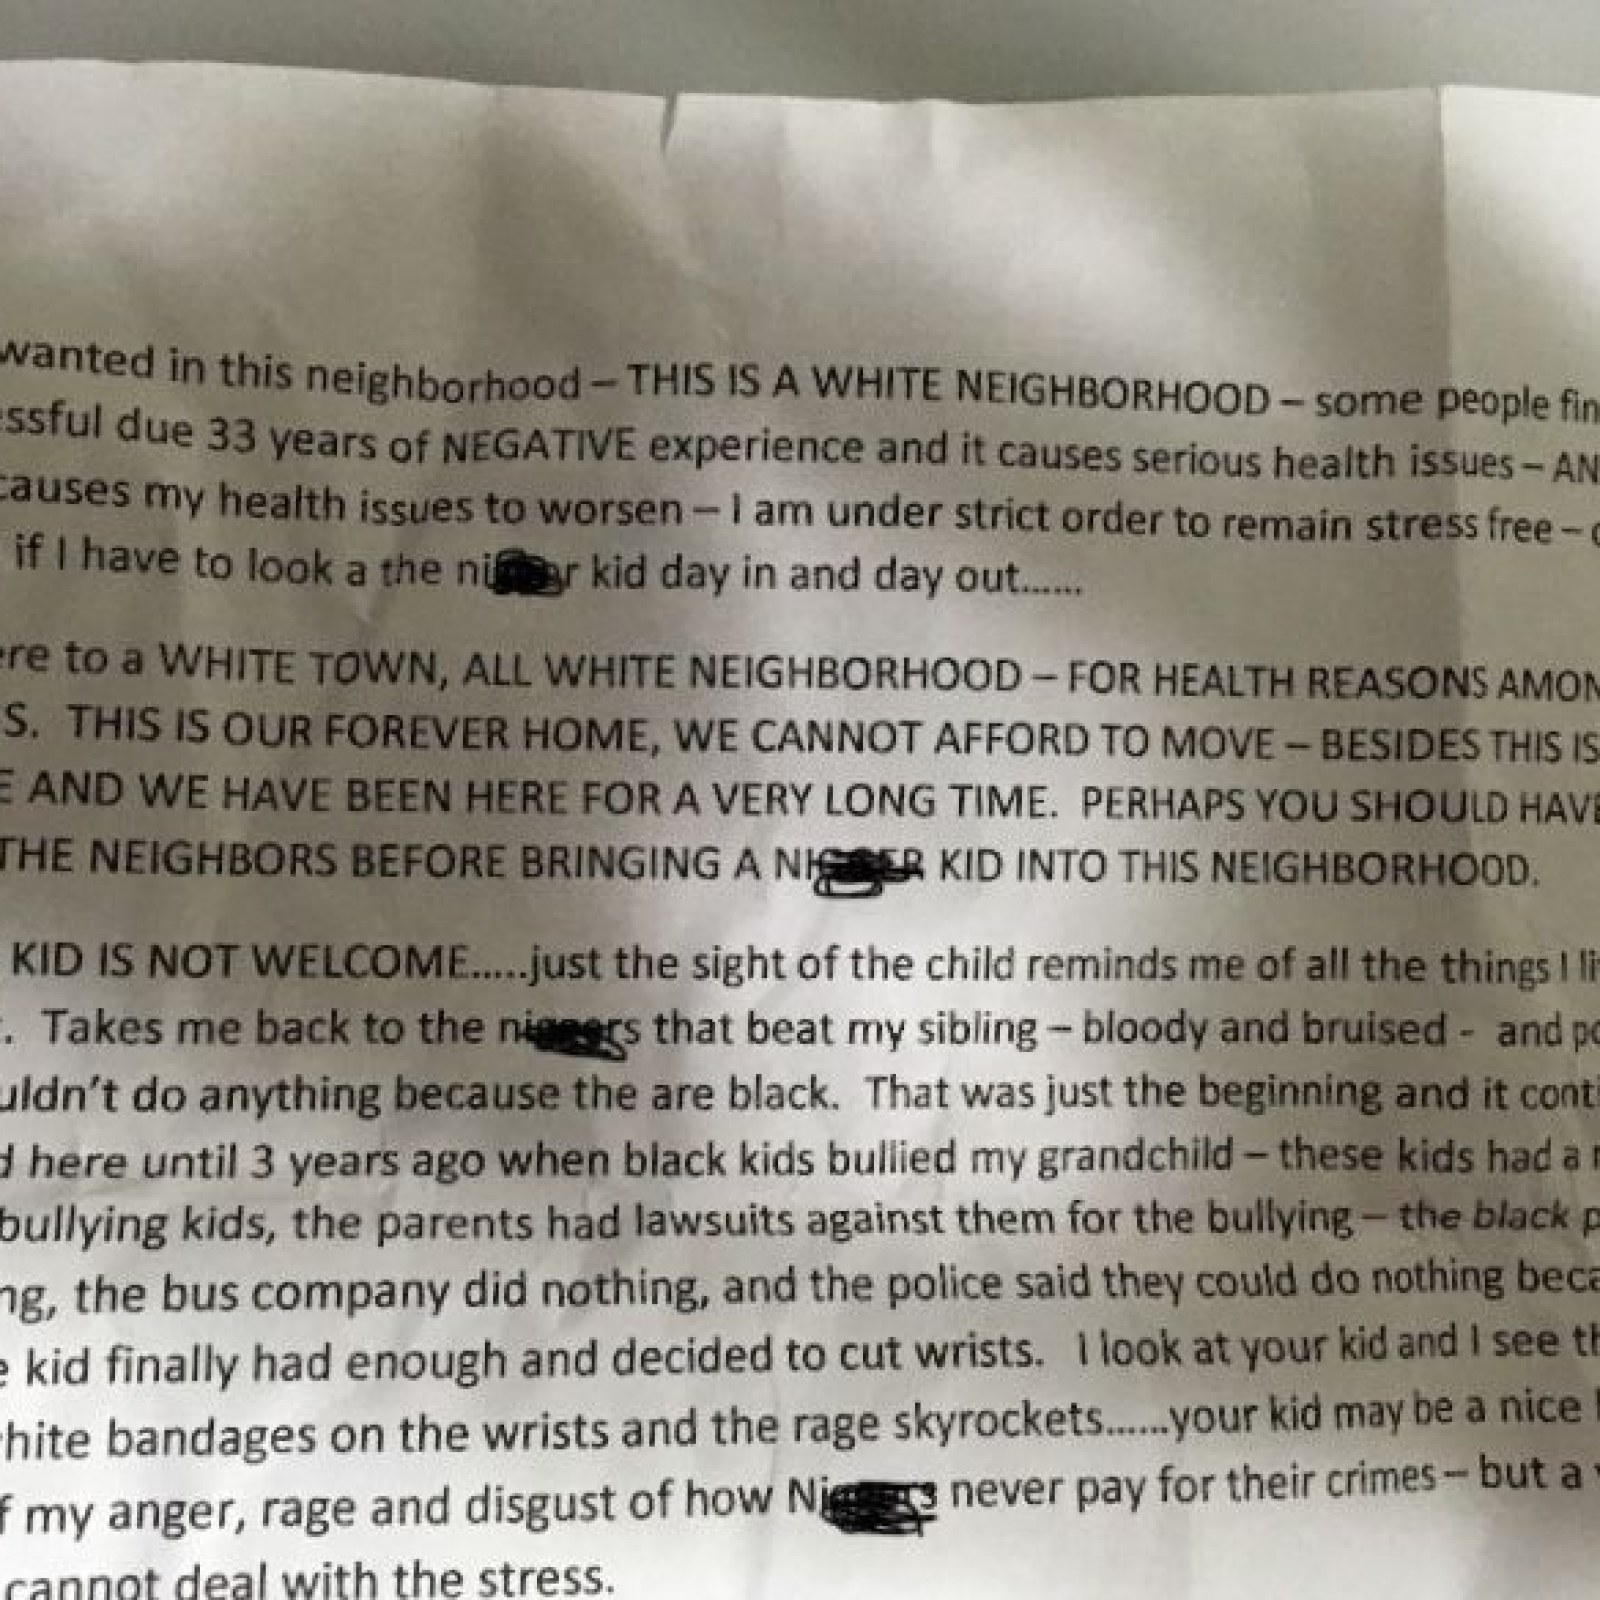 Woman Allegedly Left Racist Note on Black Neighbor's New